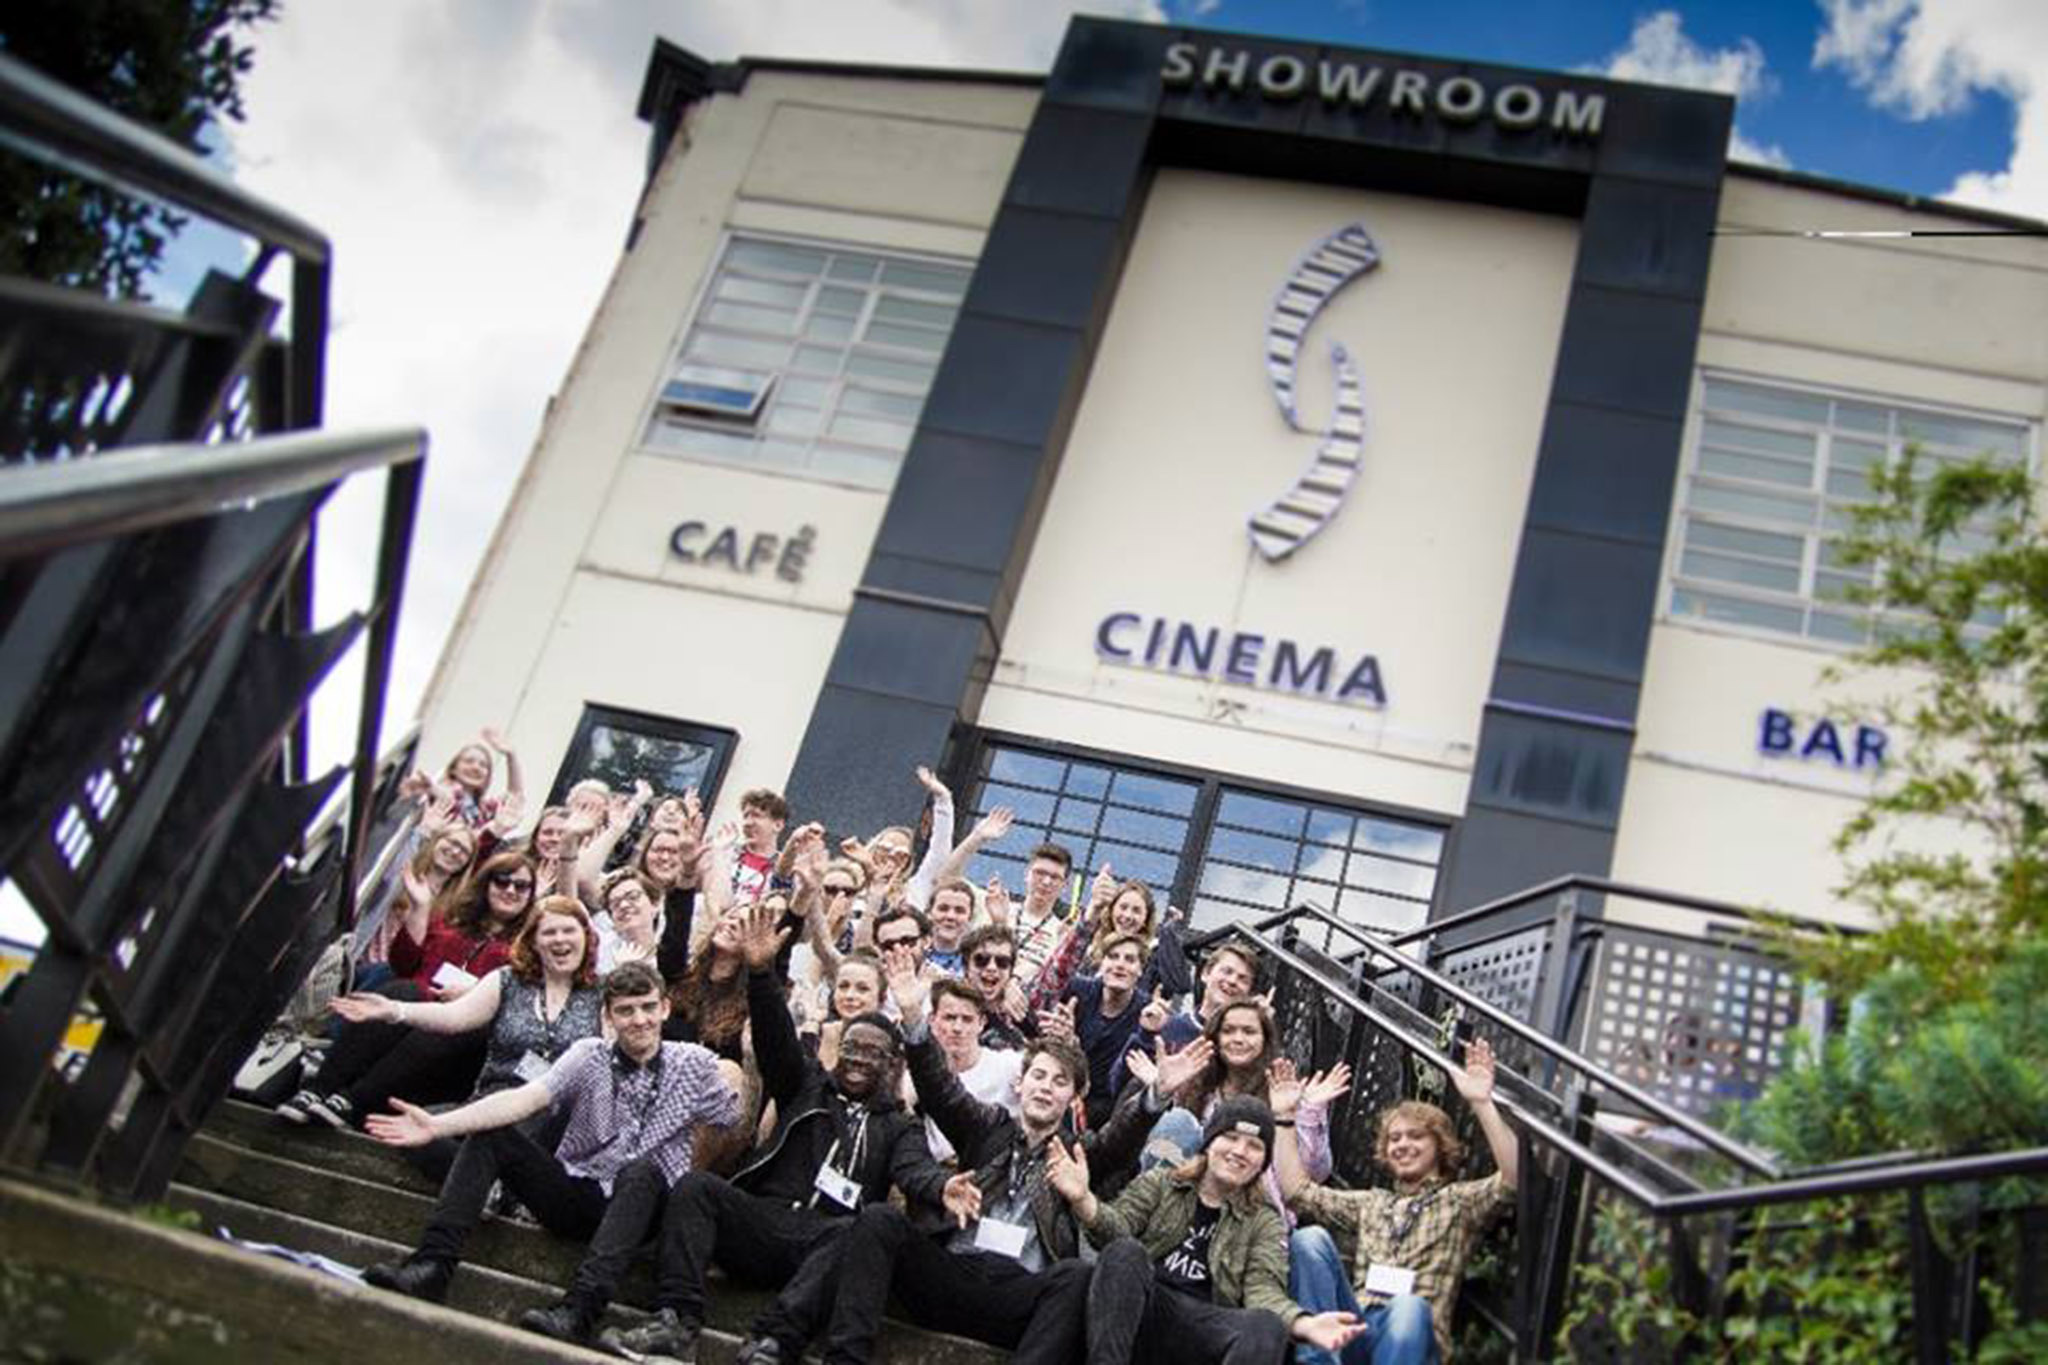 Showroom Cinema, eitw